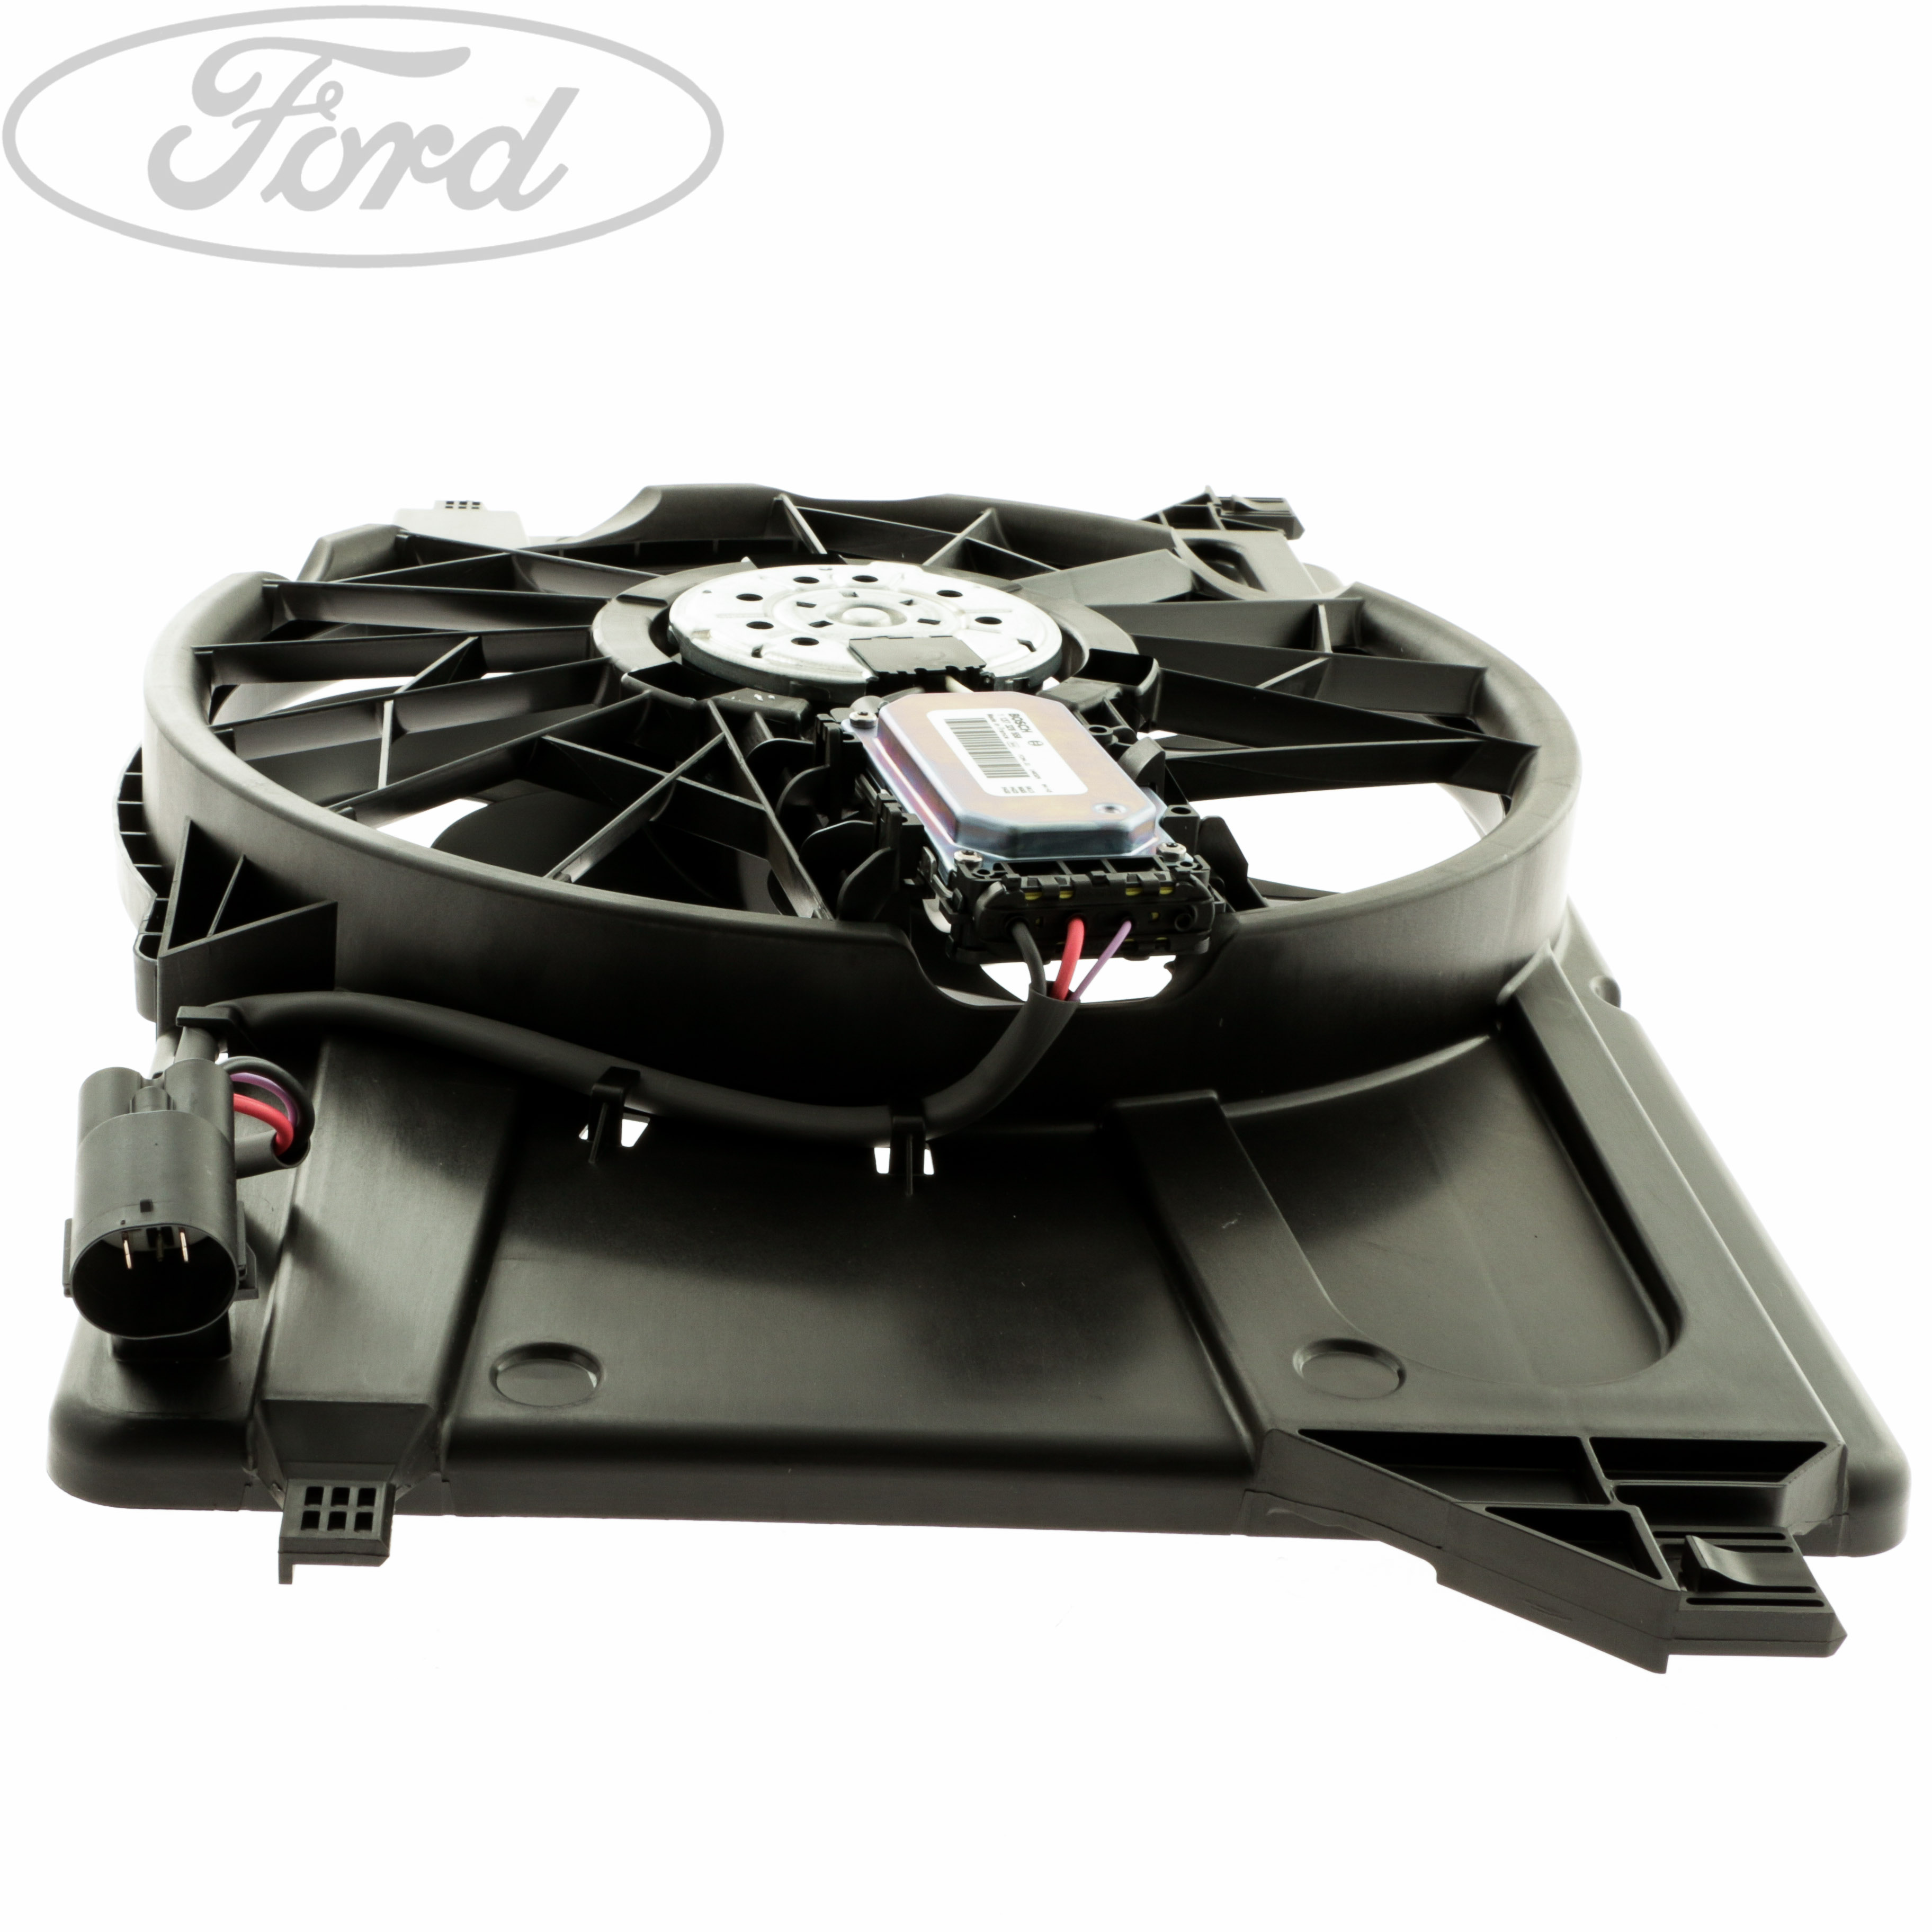 Ford Focus Cooling Manual